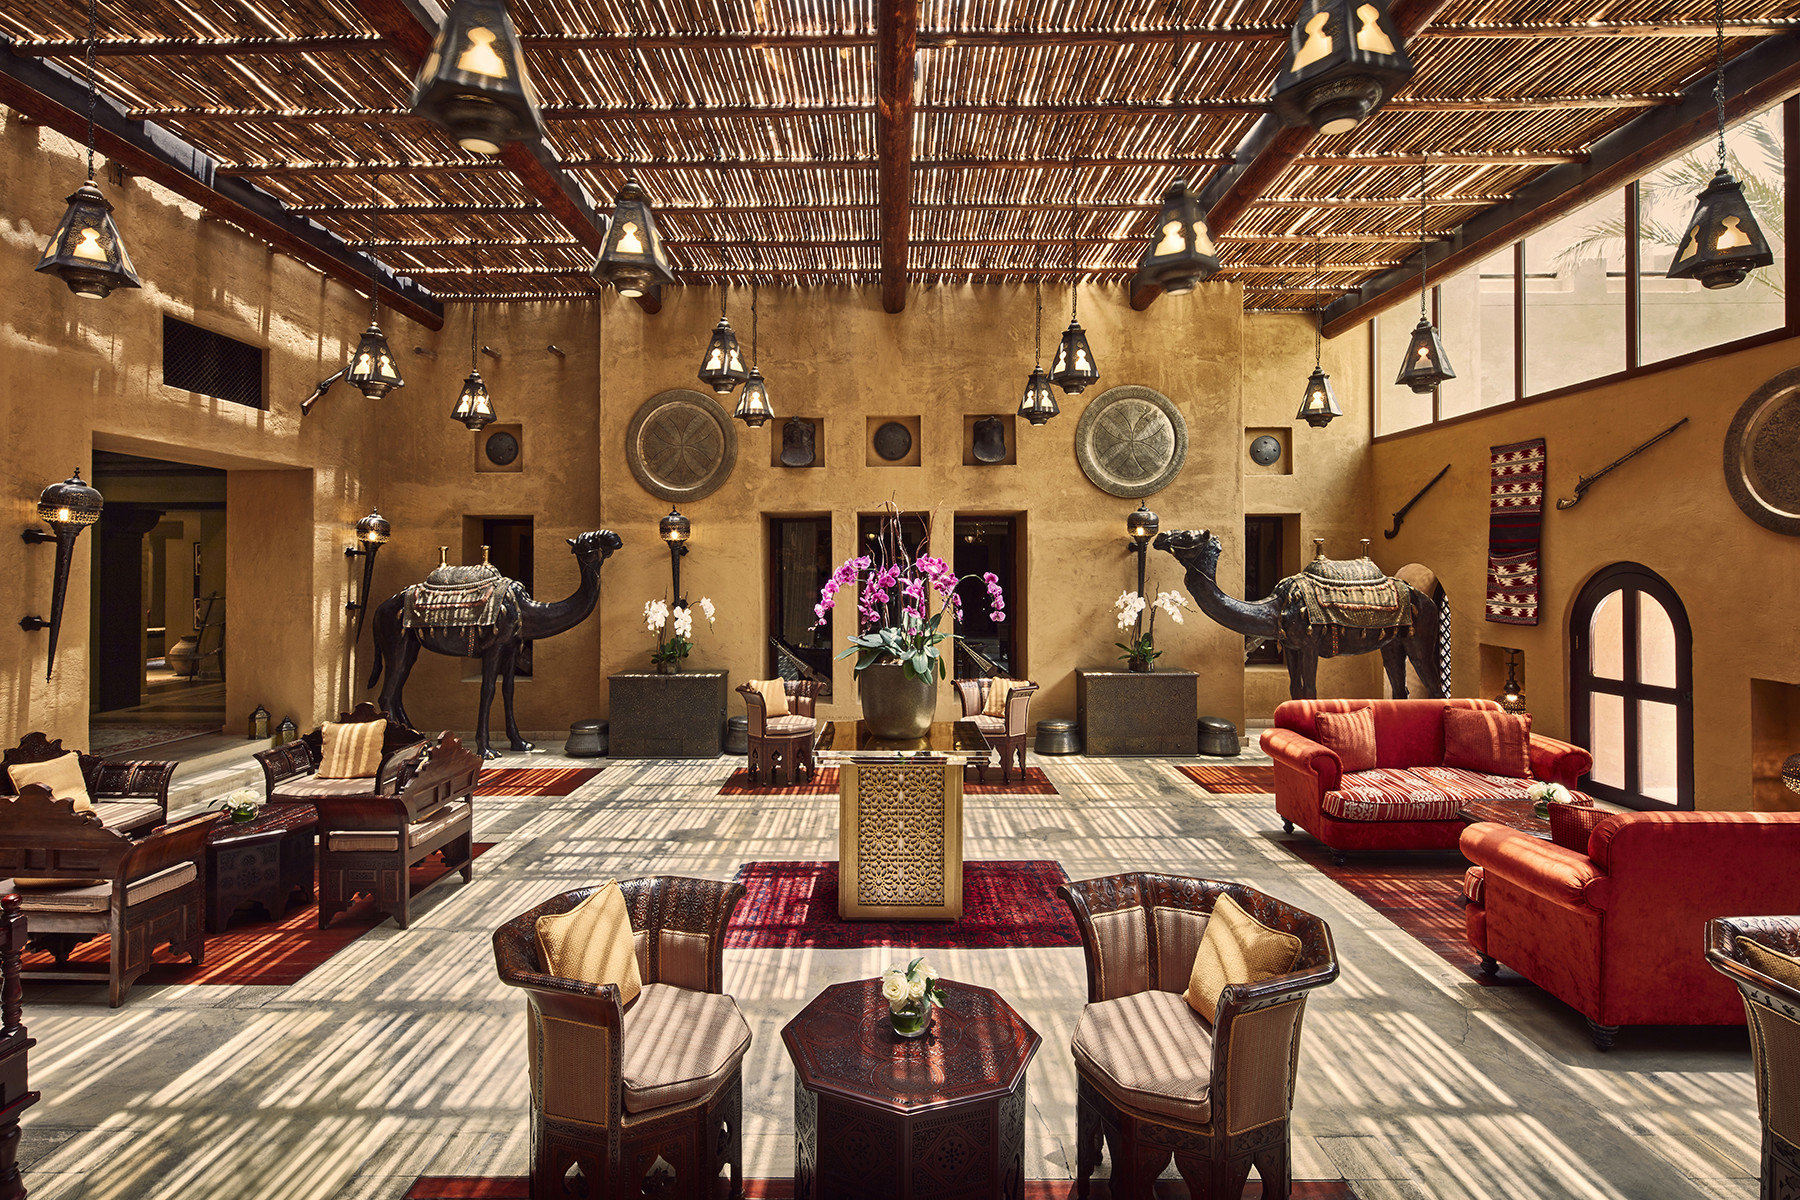 Dubai Hotels Luxury Travel Middle East indoor room interior design living room Lobby restaurant function hall furniture several